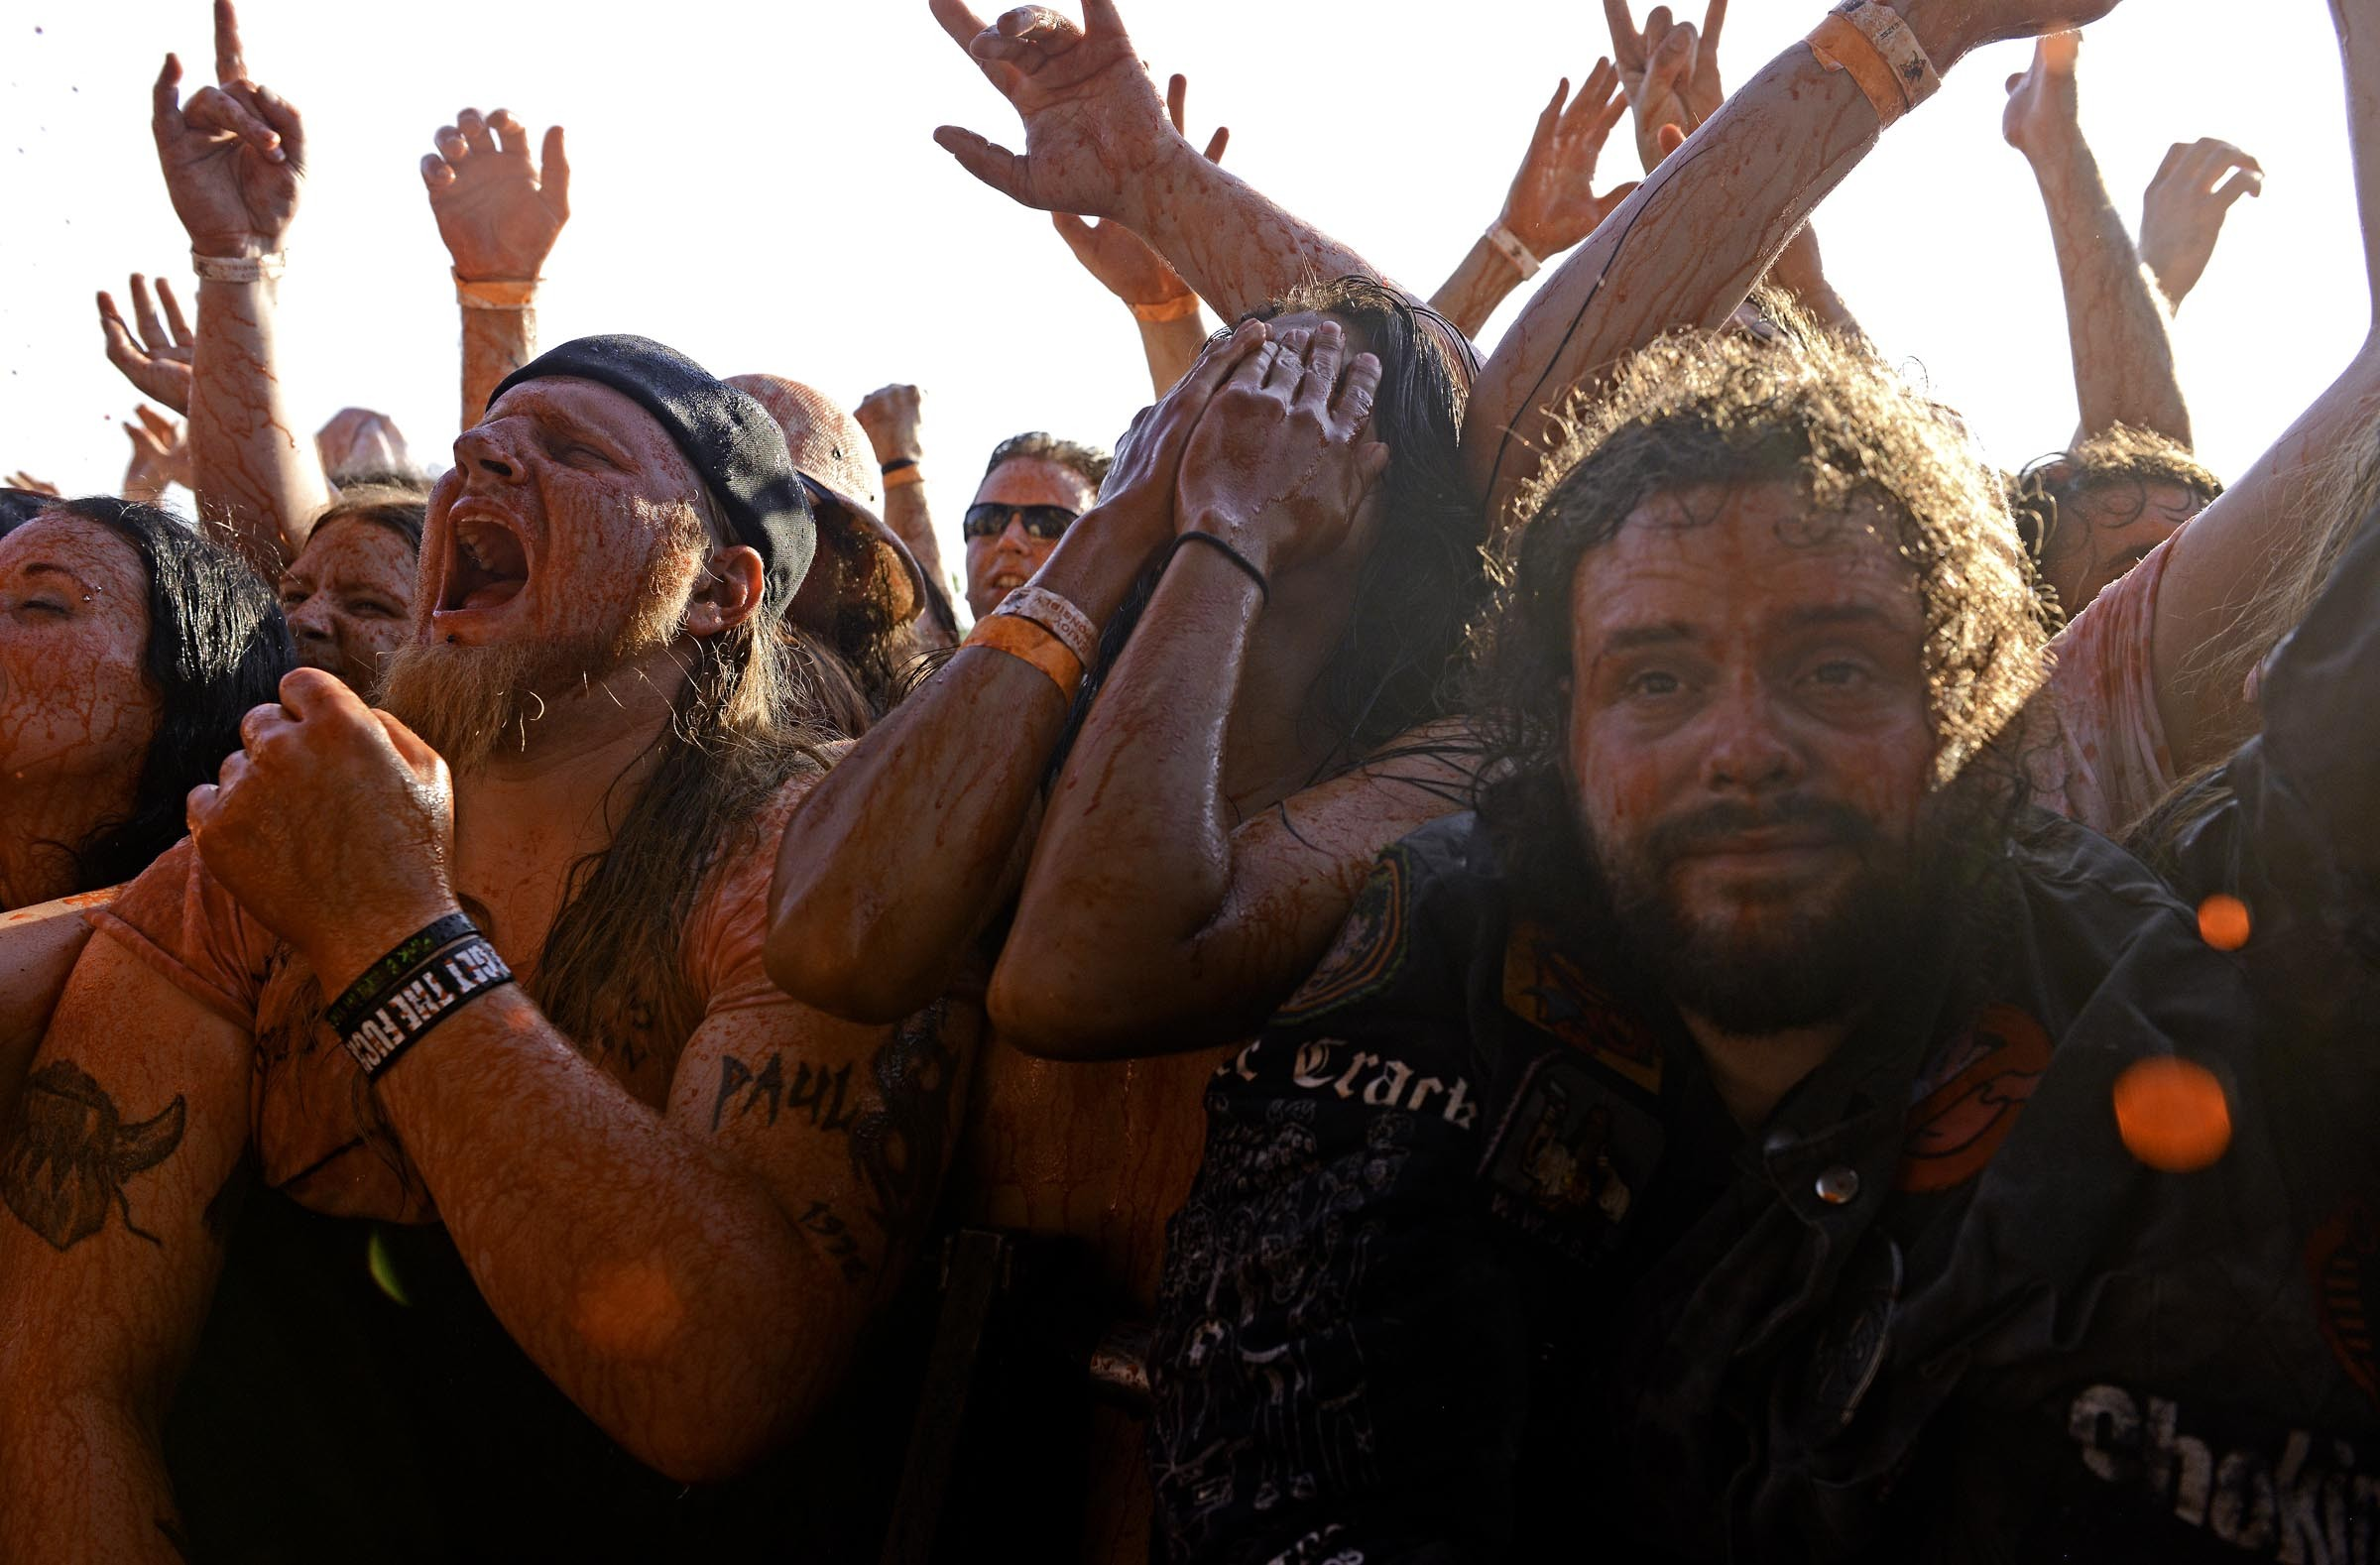 The front row is showered in fake blood at the 2014 Gwar B-Q. - SCOTT ELMQUIST